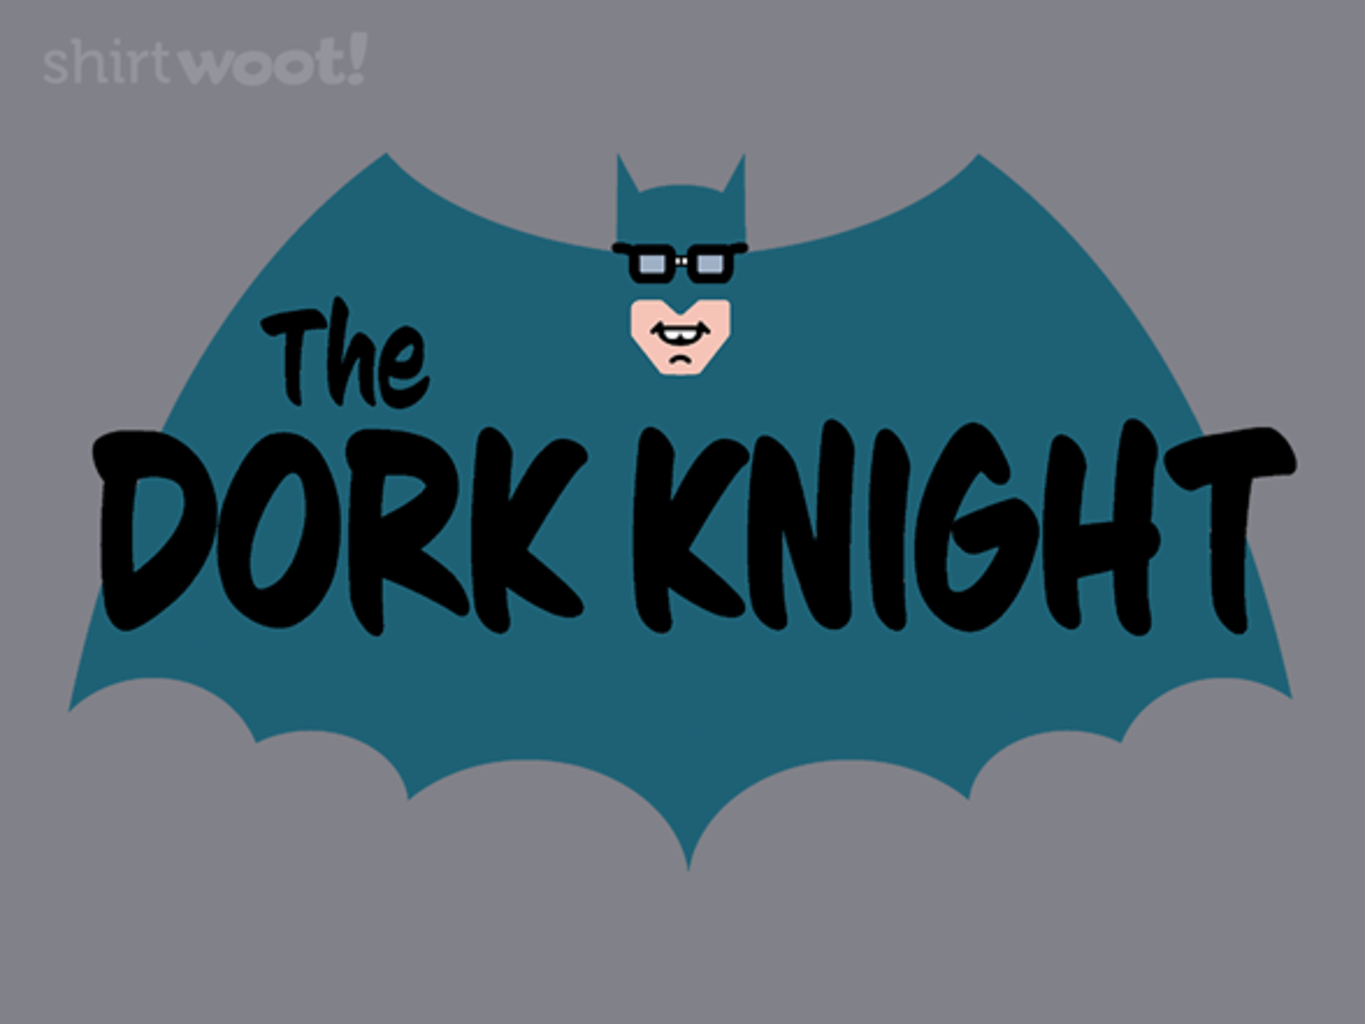 Woot!: The Dork Knight